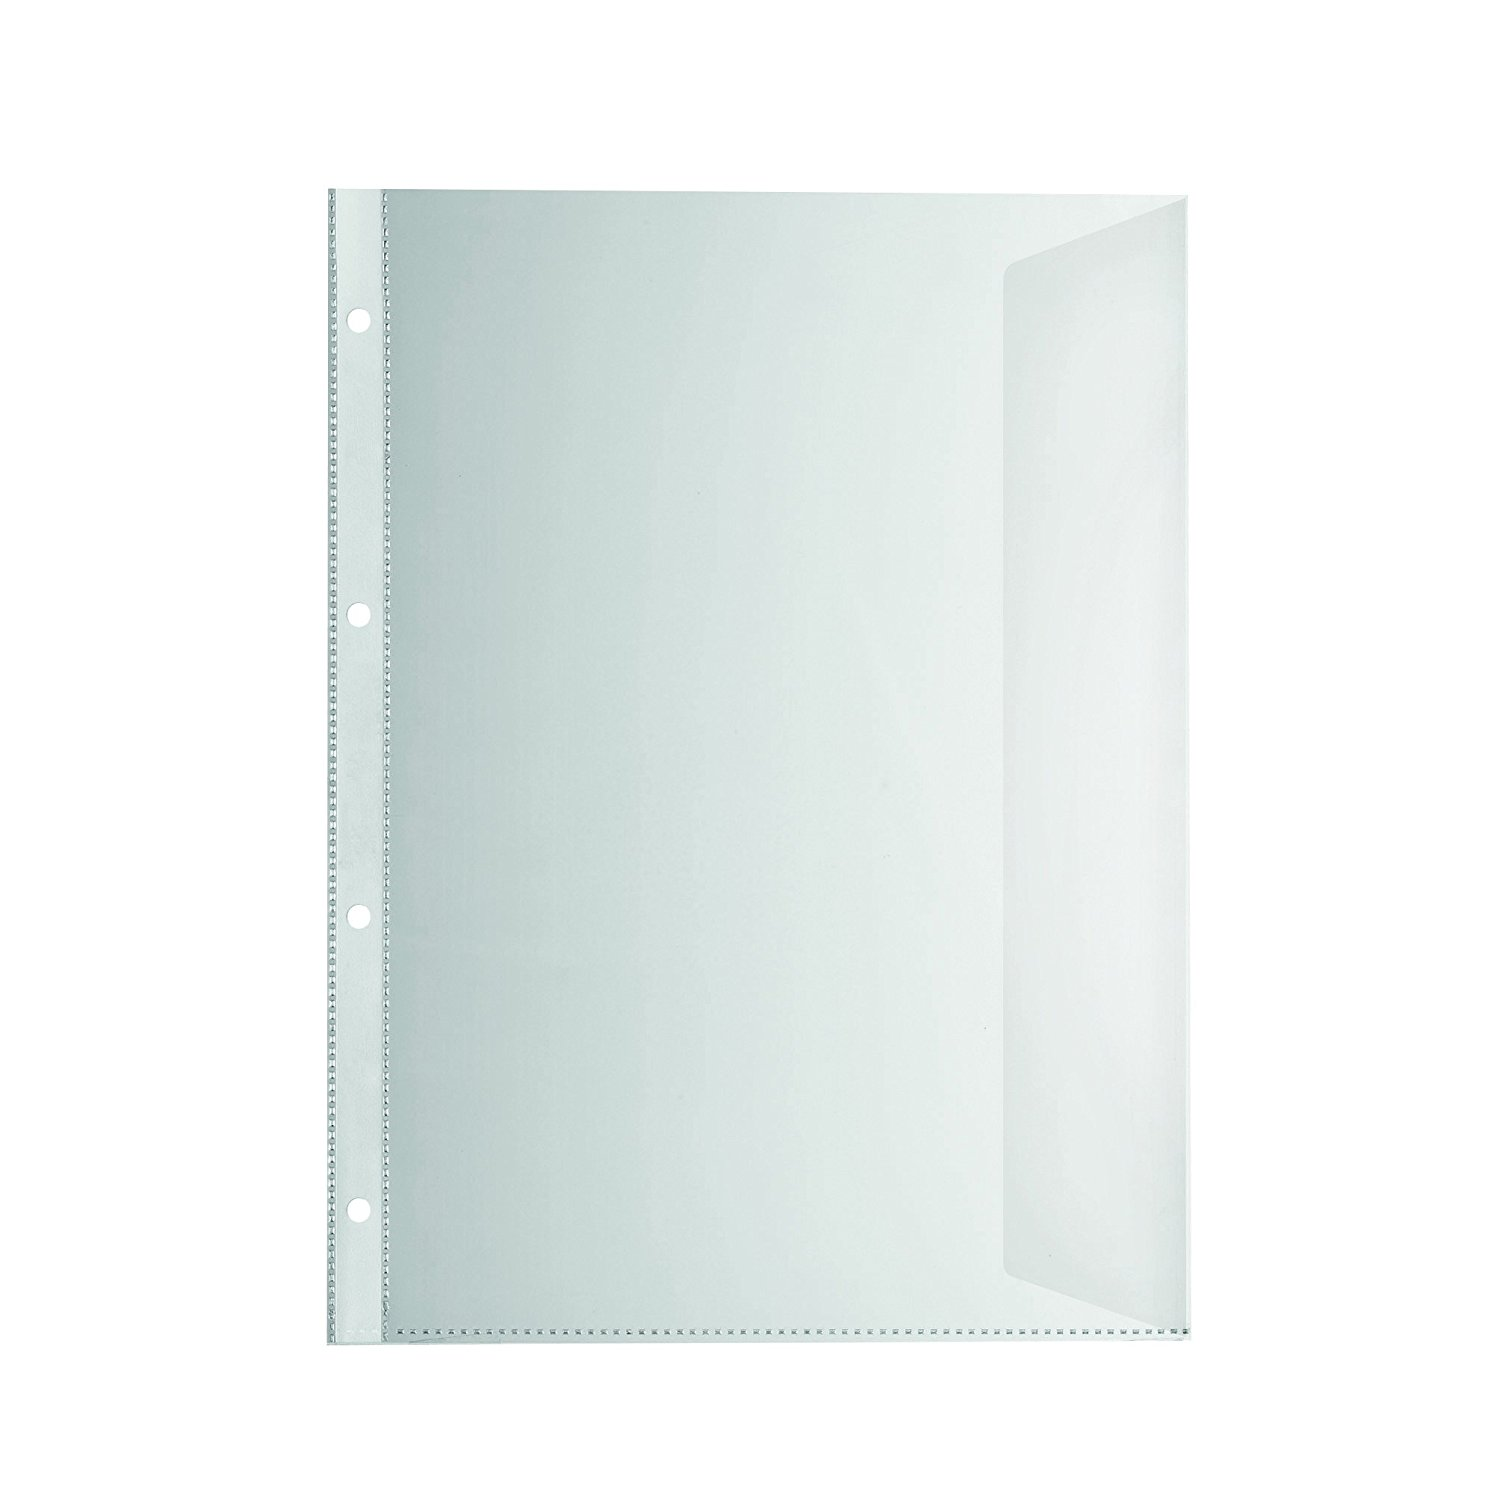 Cheap Clear Document Sleeves, find Clear Document Sleeves